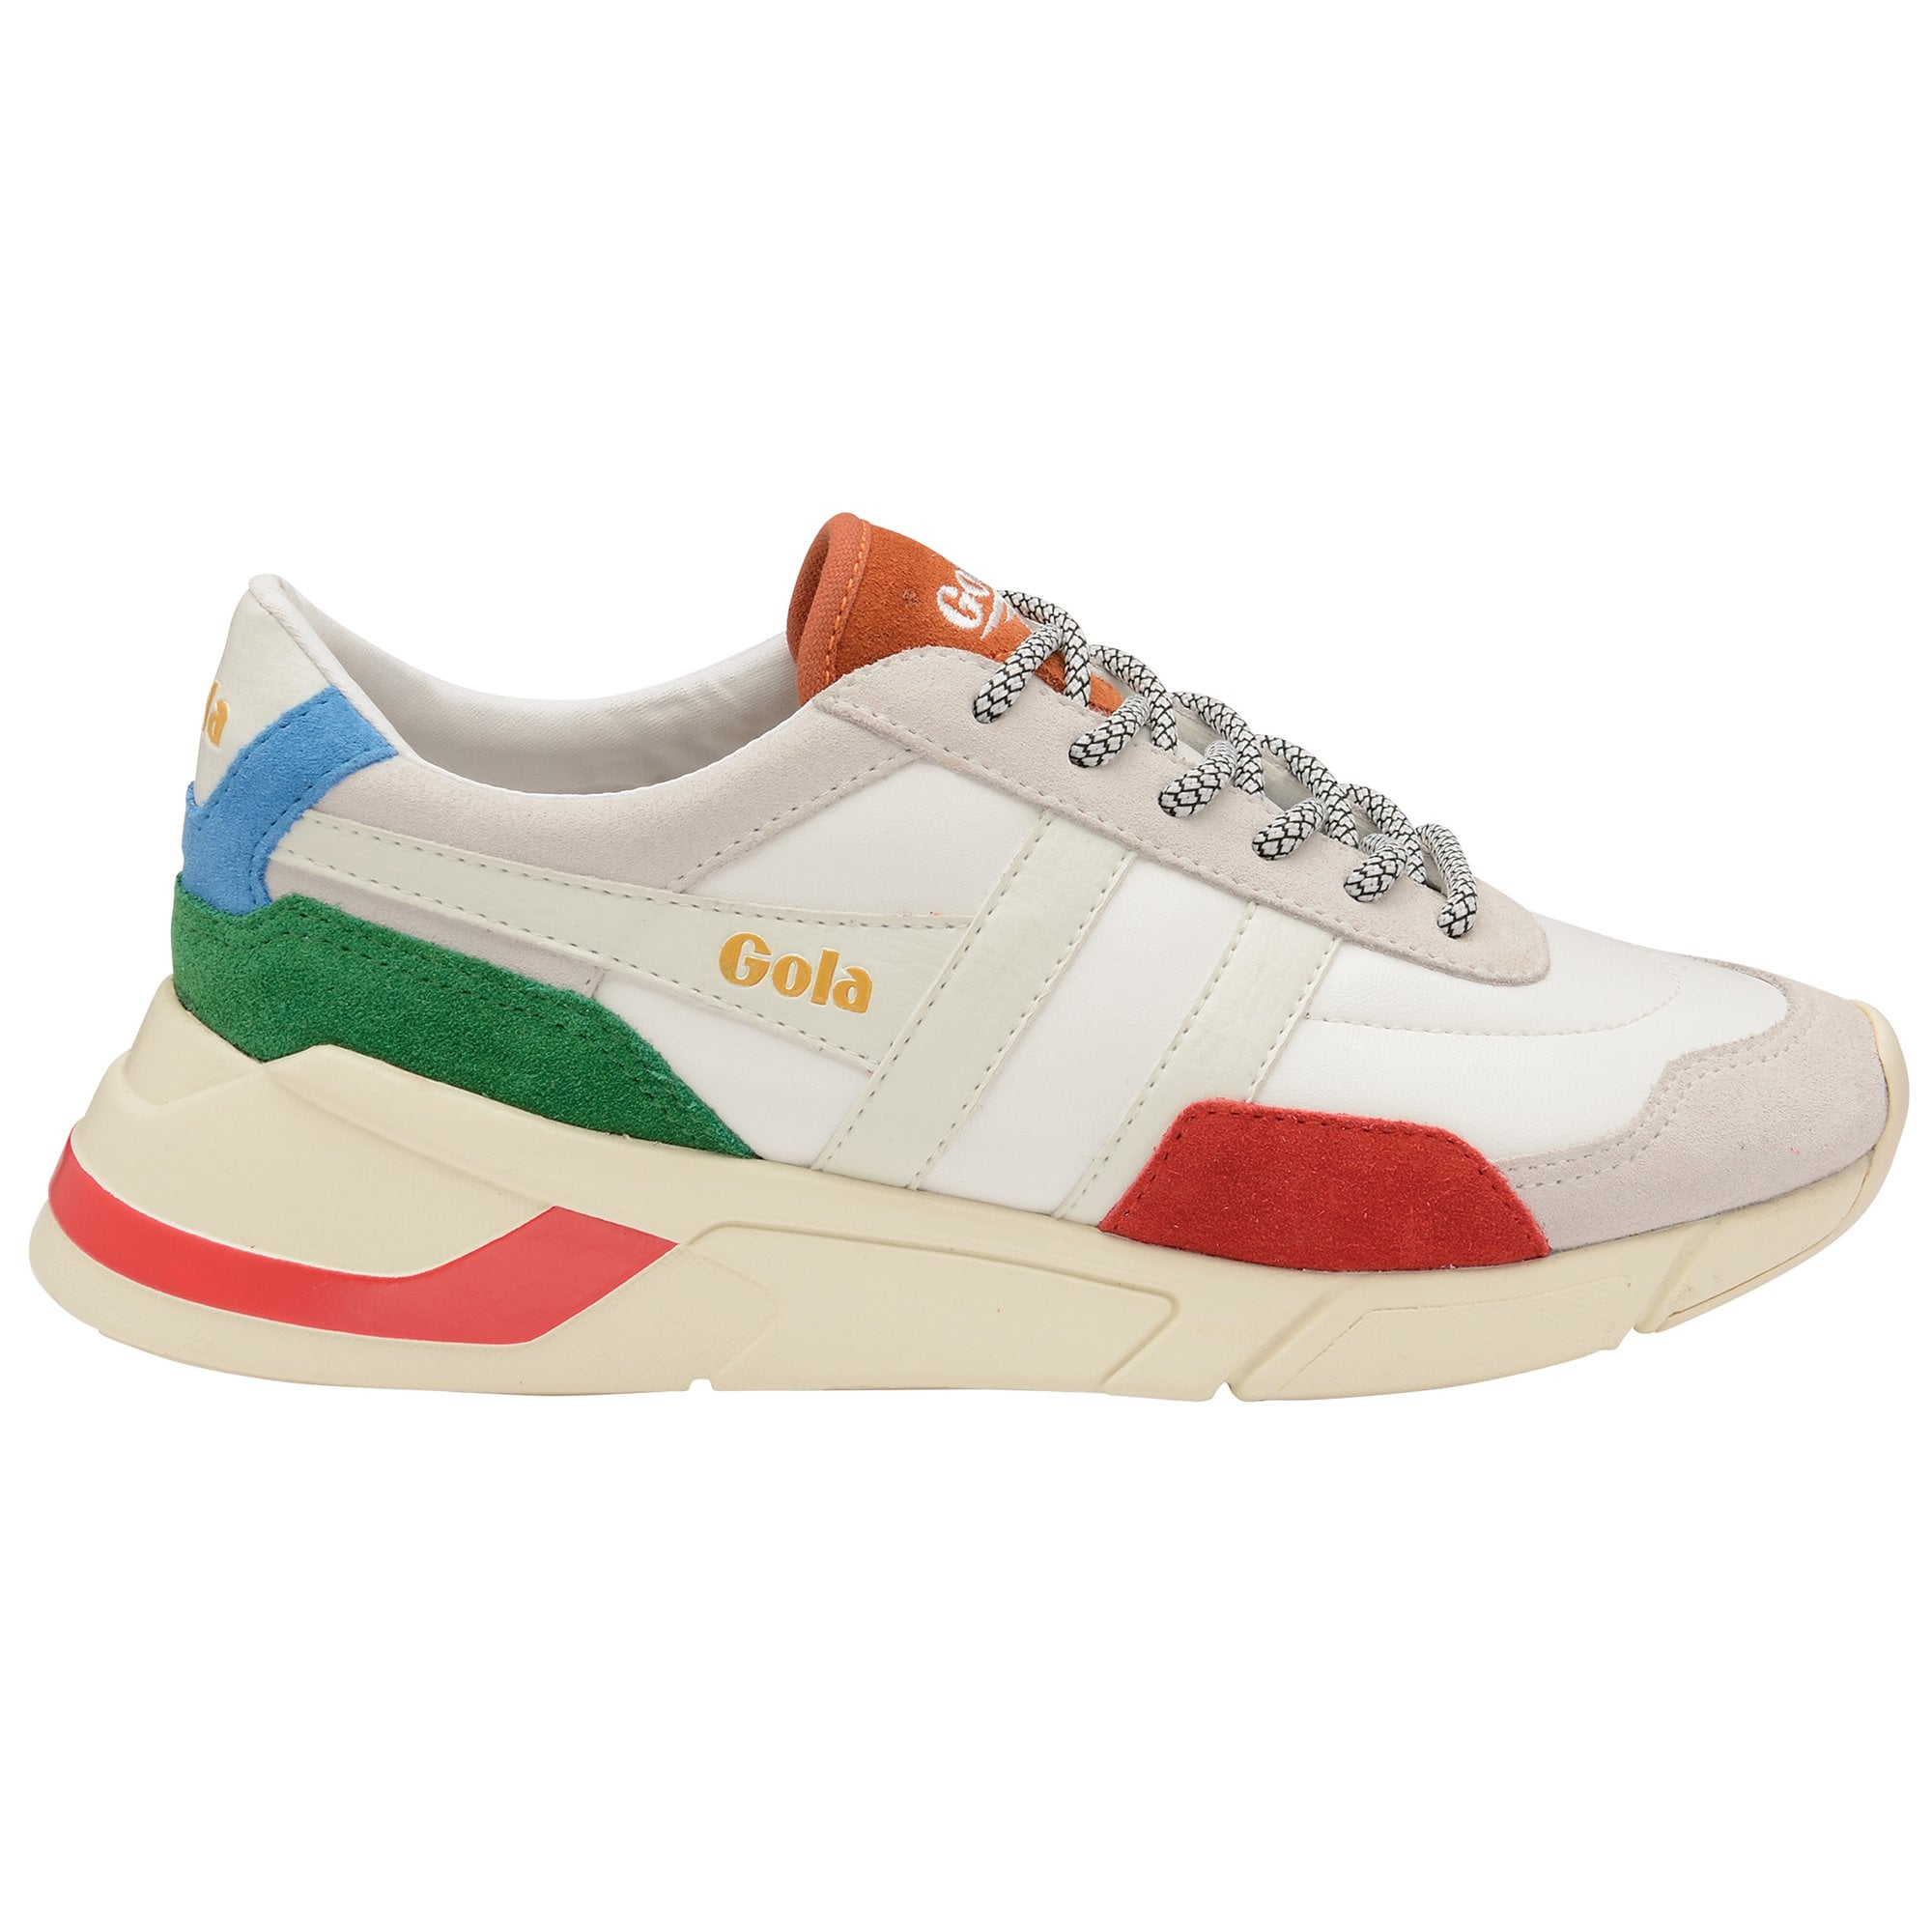 Gola womens Eclipse Trident trainers